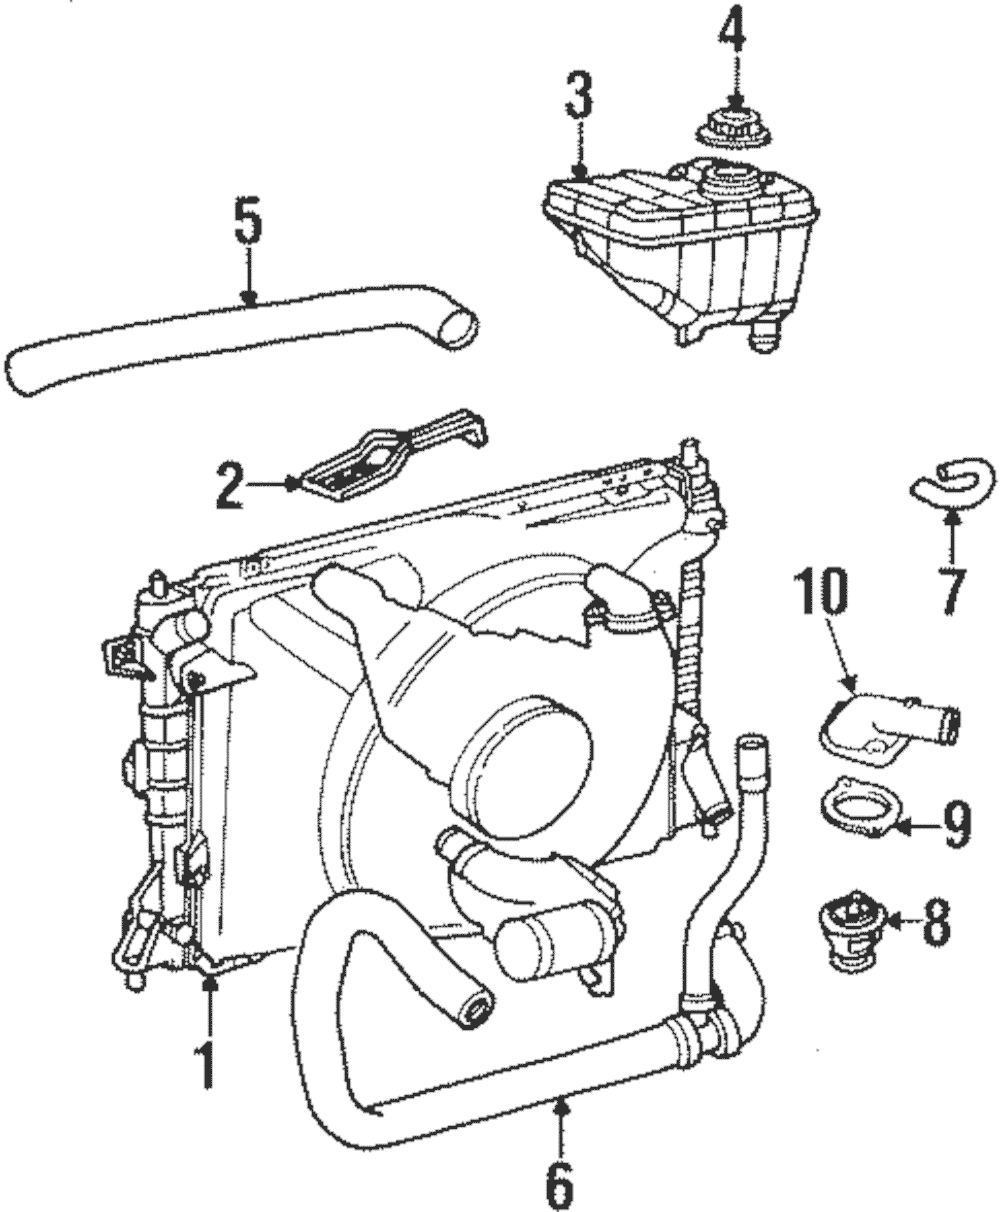 [DIAGRAM] 1992 Ford Crown Victoria 4 6 Engine Diagram FULL